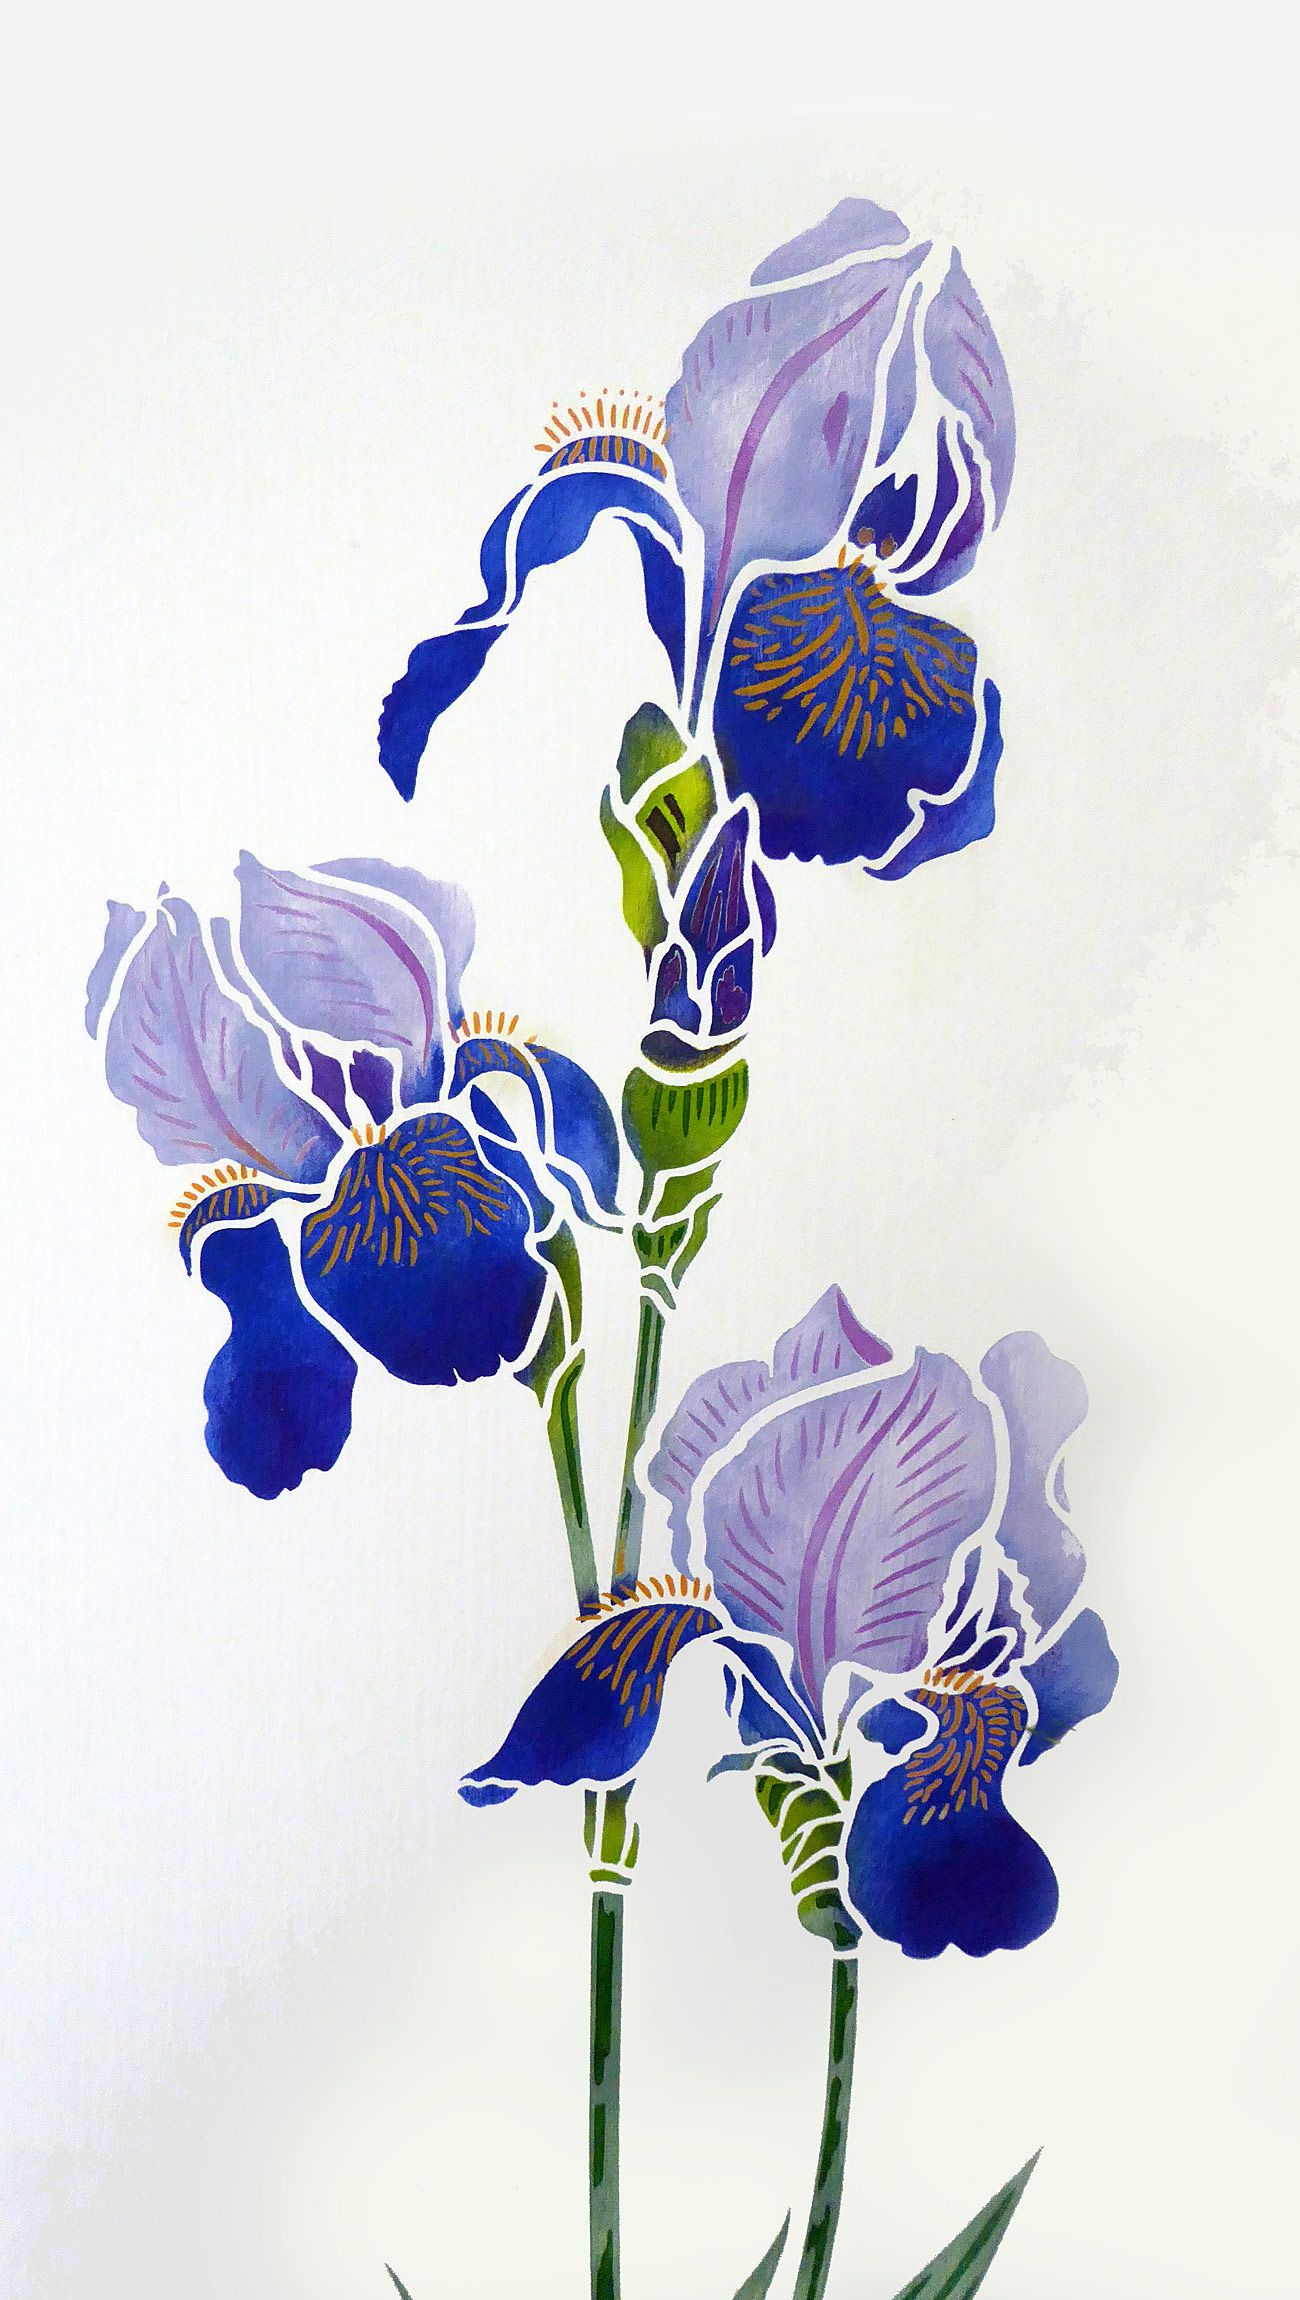 Exquisite large 2 sheet flower stencil the large agapanthus stencil exquisite large 2 sheet flower stencil the large agapanthus stencil based on hennys closely observed drawings of the beautiful agapanthus flower izmirmasajfo